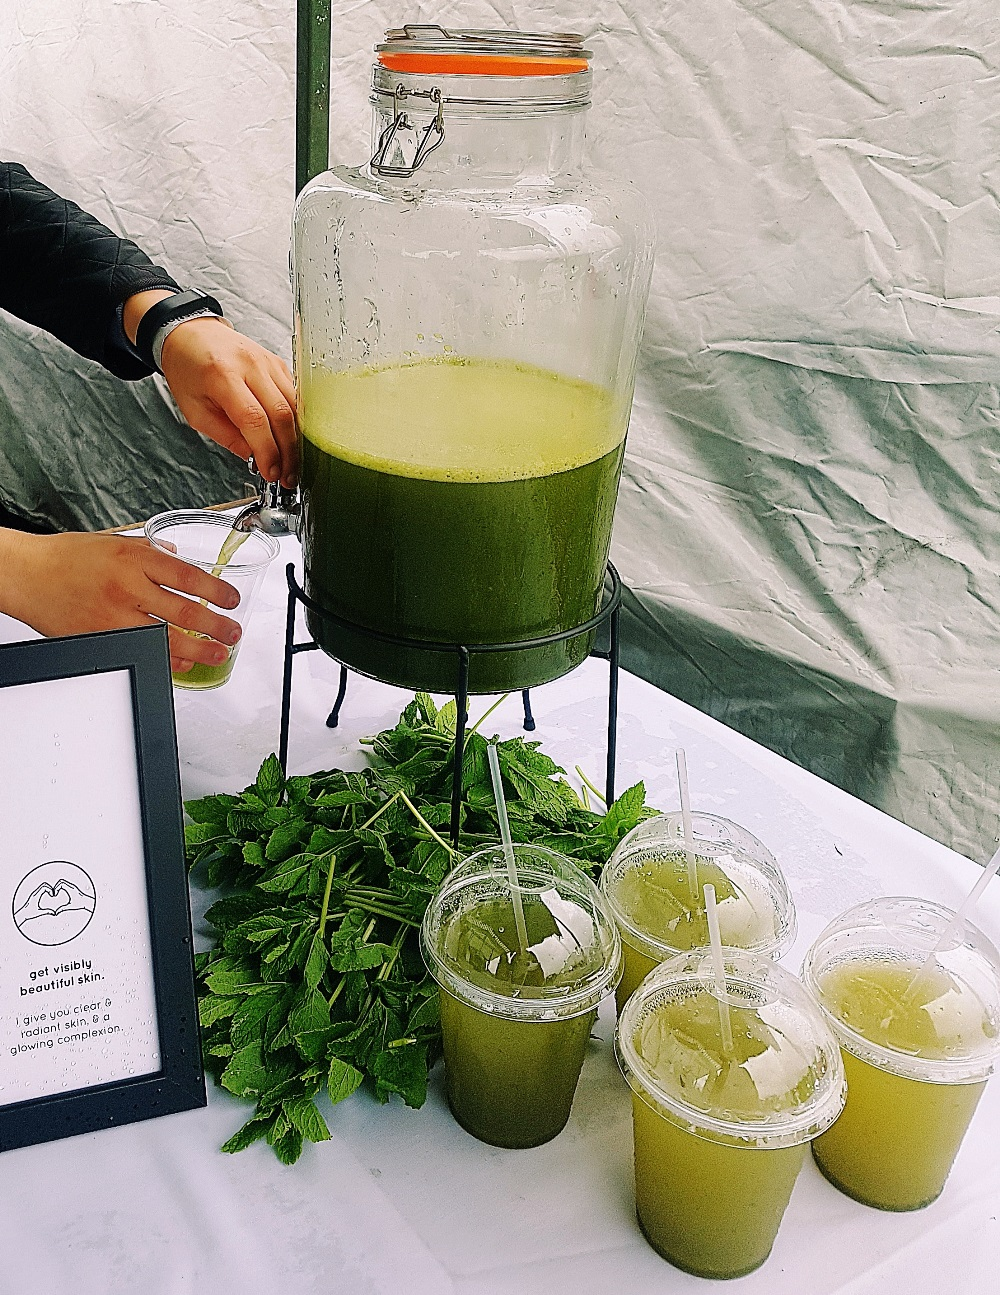 Matcha Tea at North Leeds Food Festival